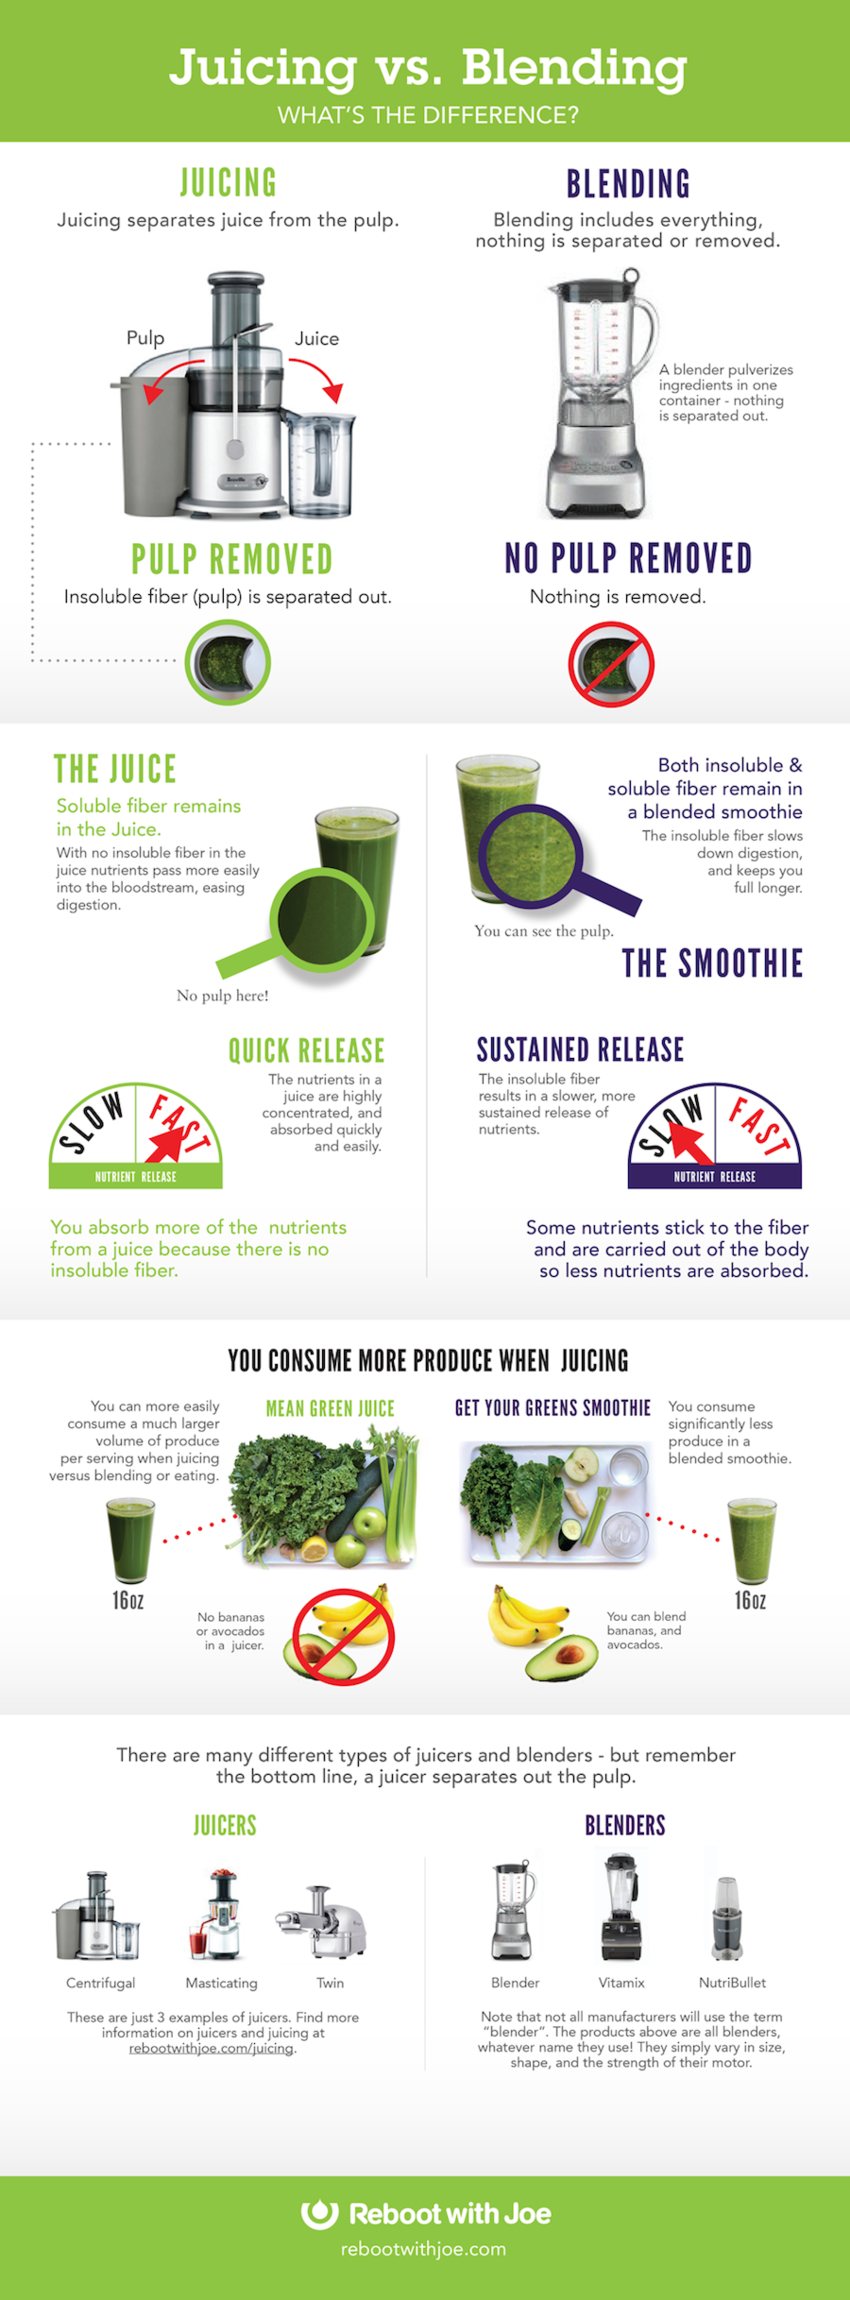 5 Differences Between Juicing And Blending Infographic